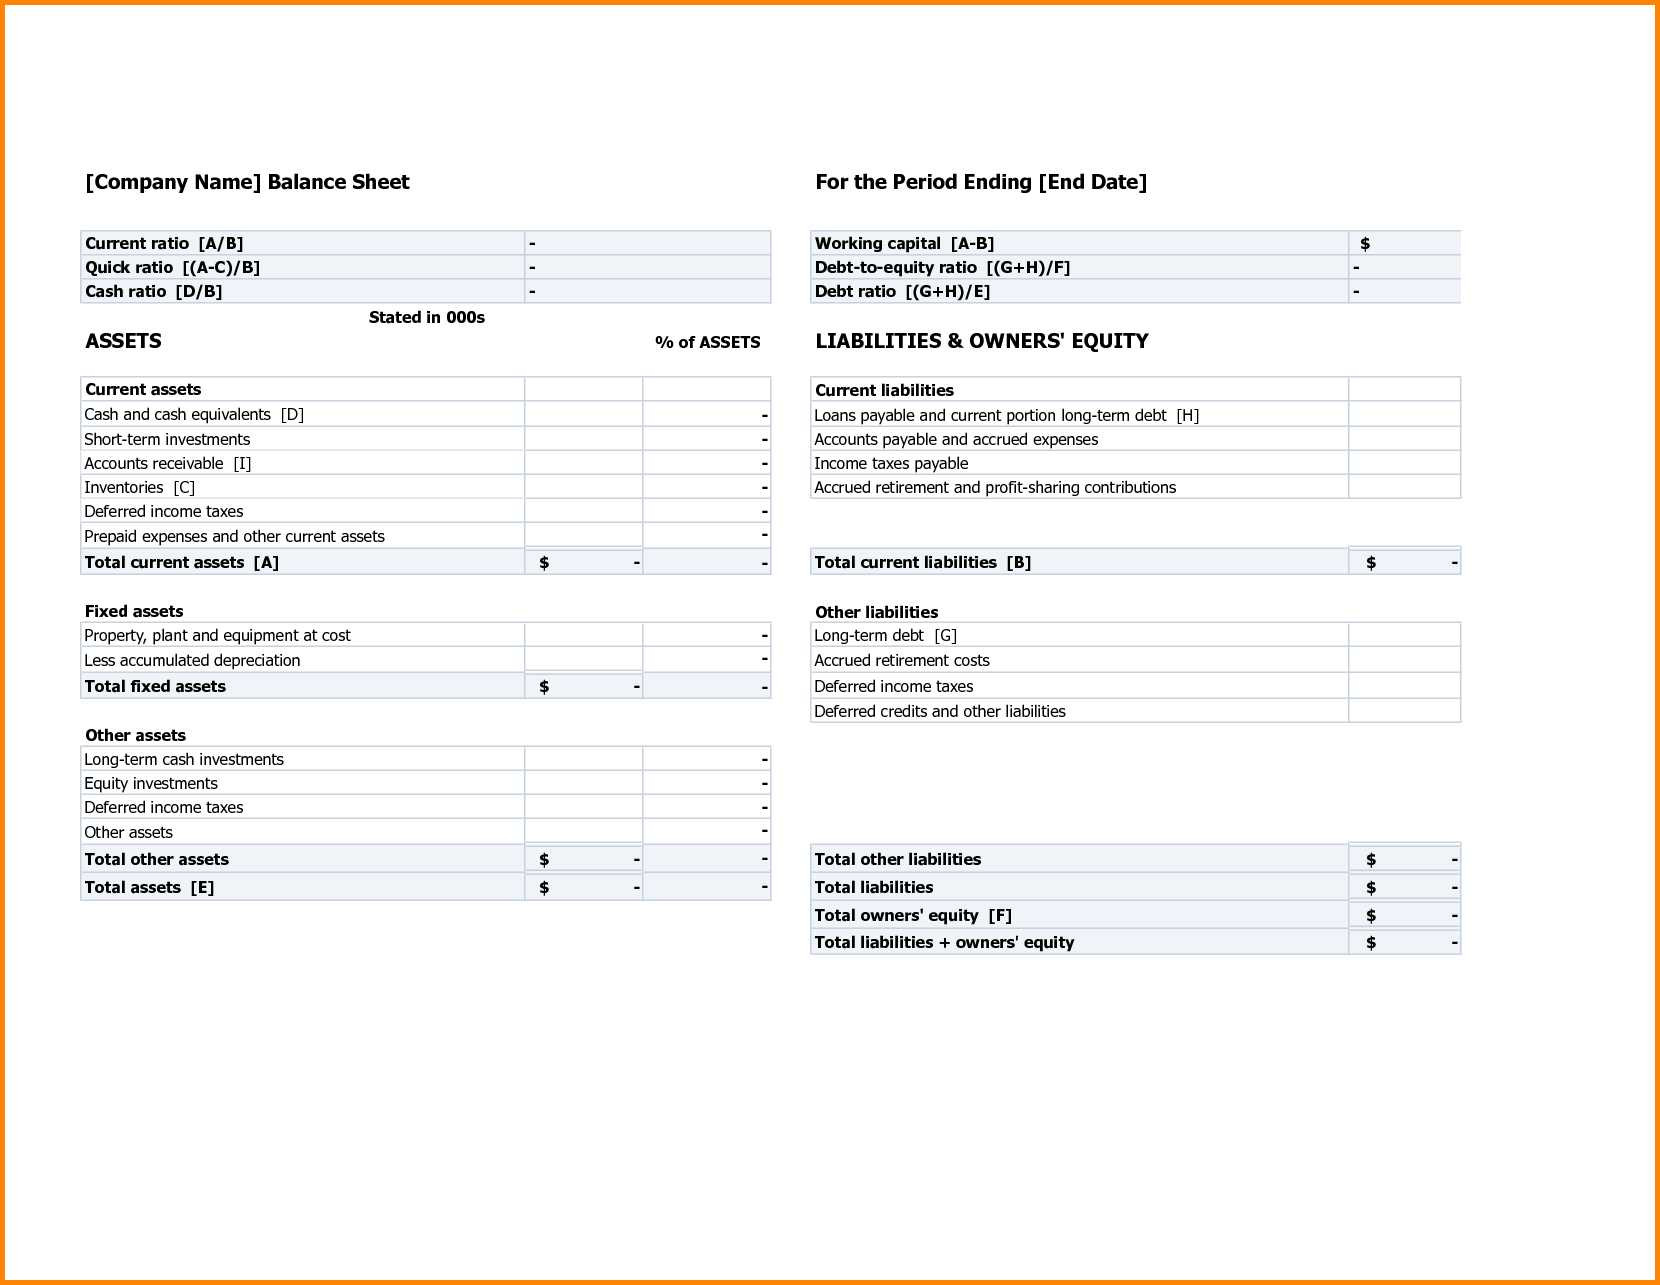 Financial Statement Template Xls Then Balance Sheet Template Xls And Projection With Google Spreadsheet